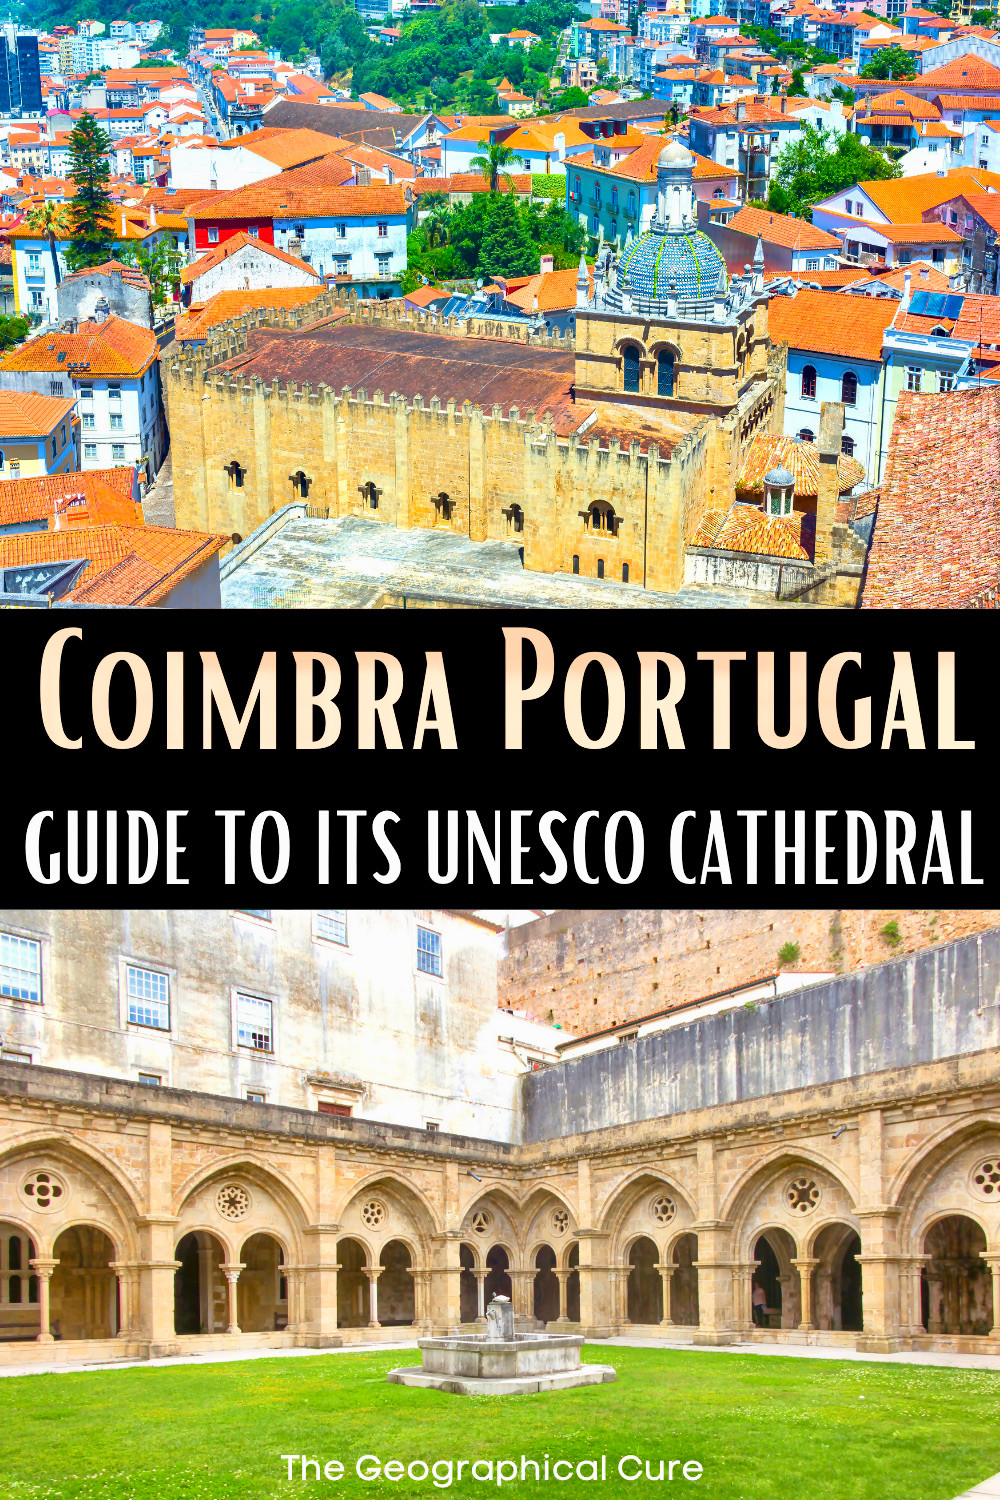 guide to visiting Se Velha, a UNESCO cathedral in Coimbra Portugal